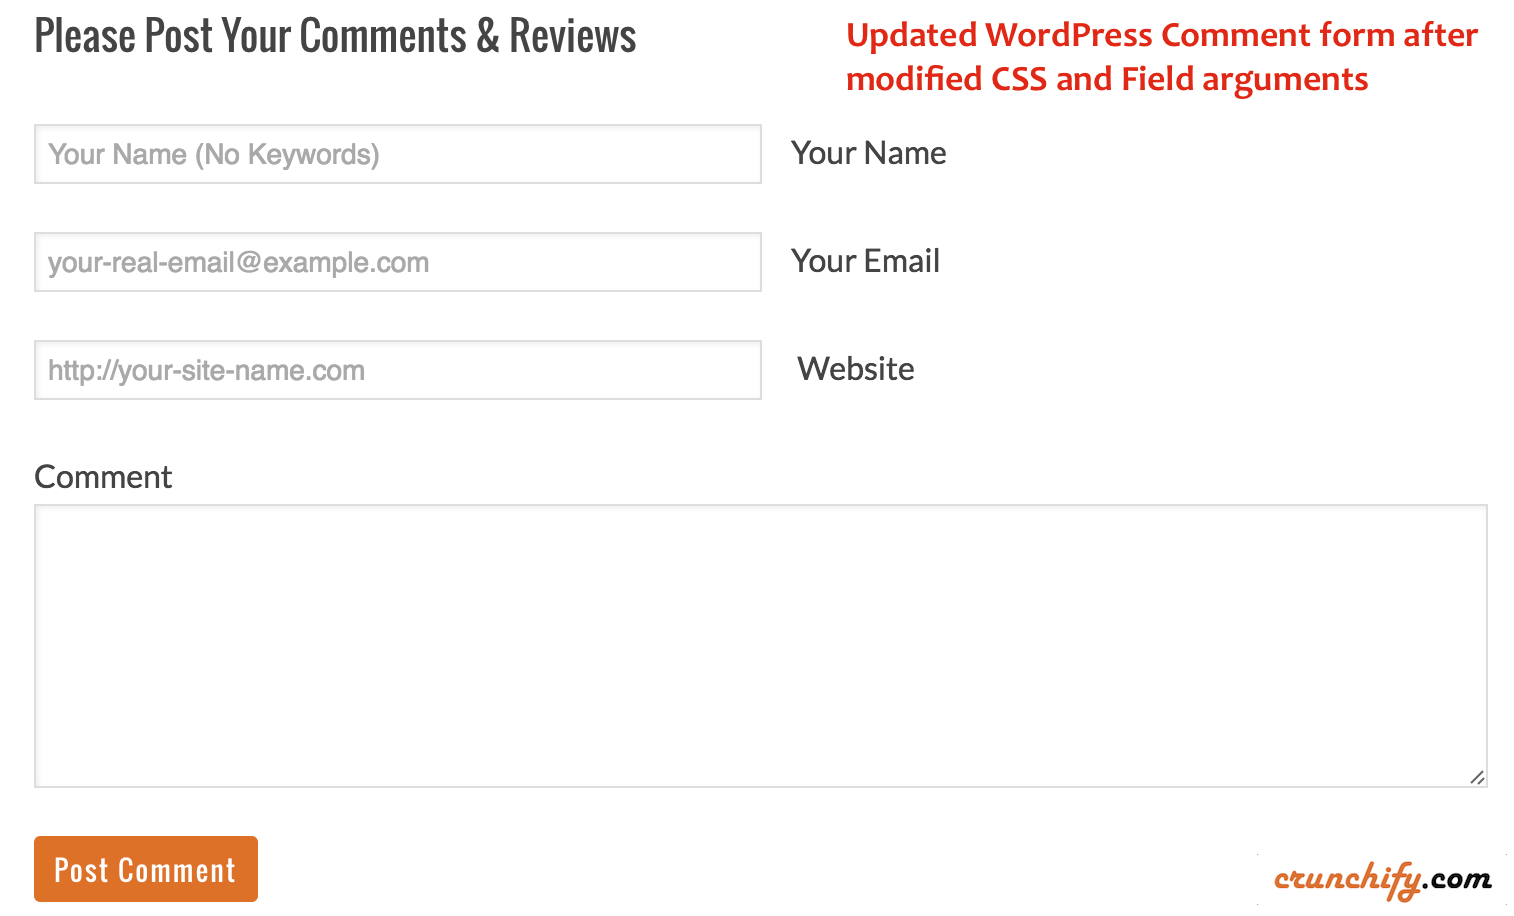 Updated WordPress Comment form after modified CSS and Field arguments